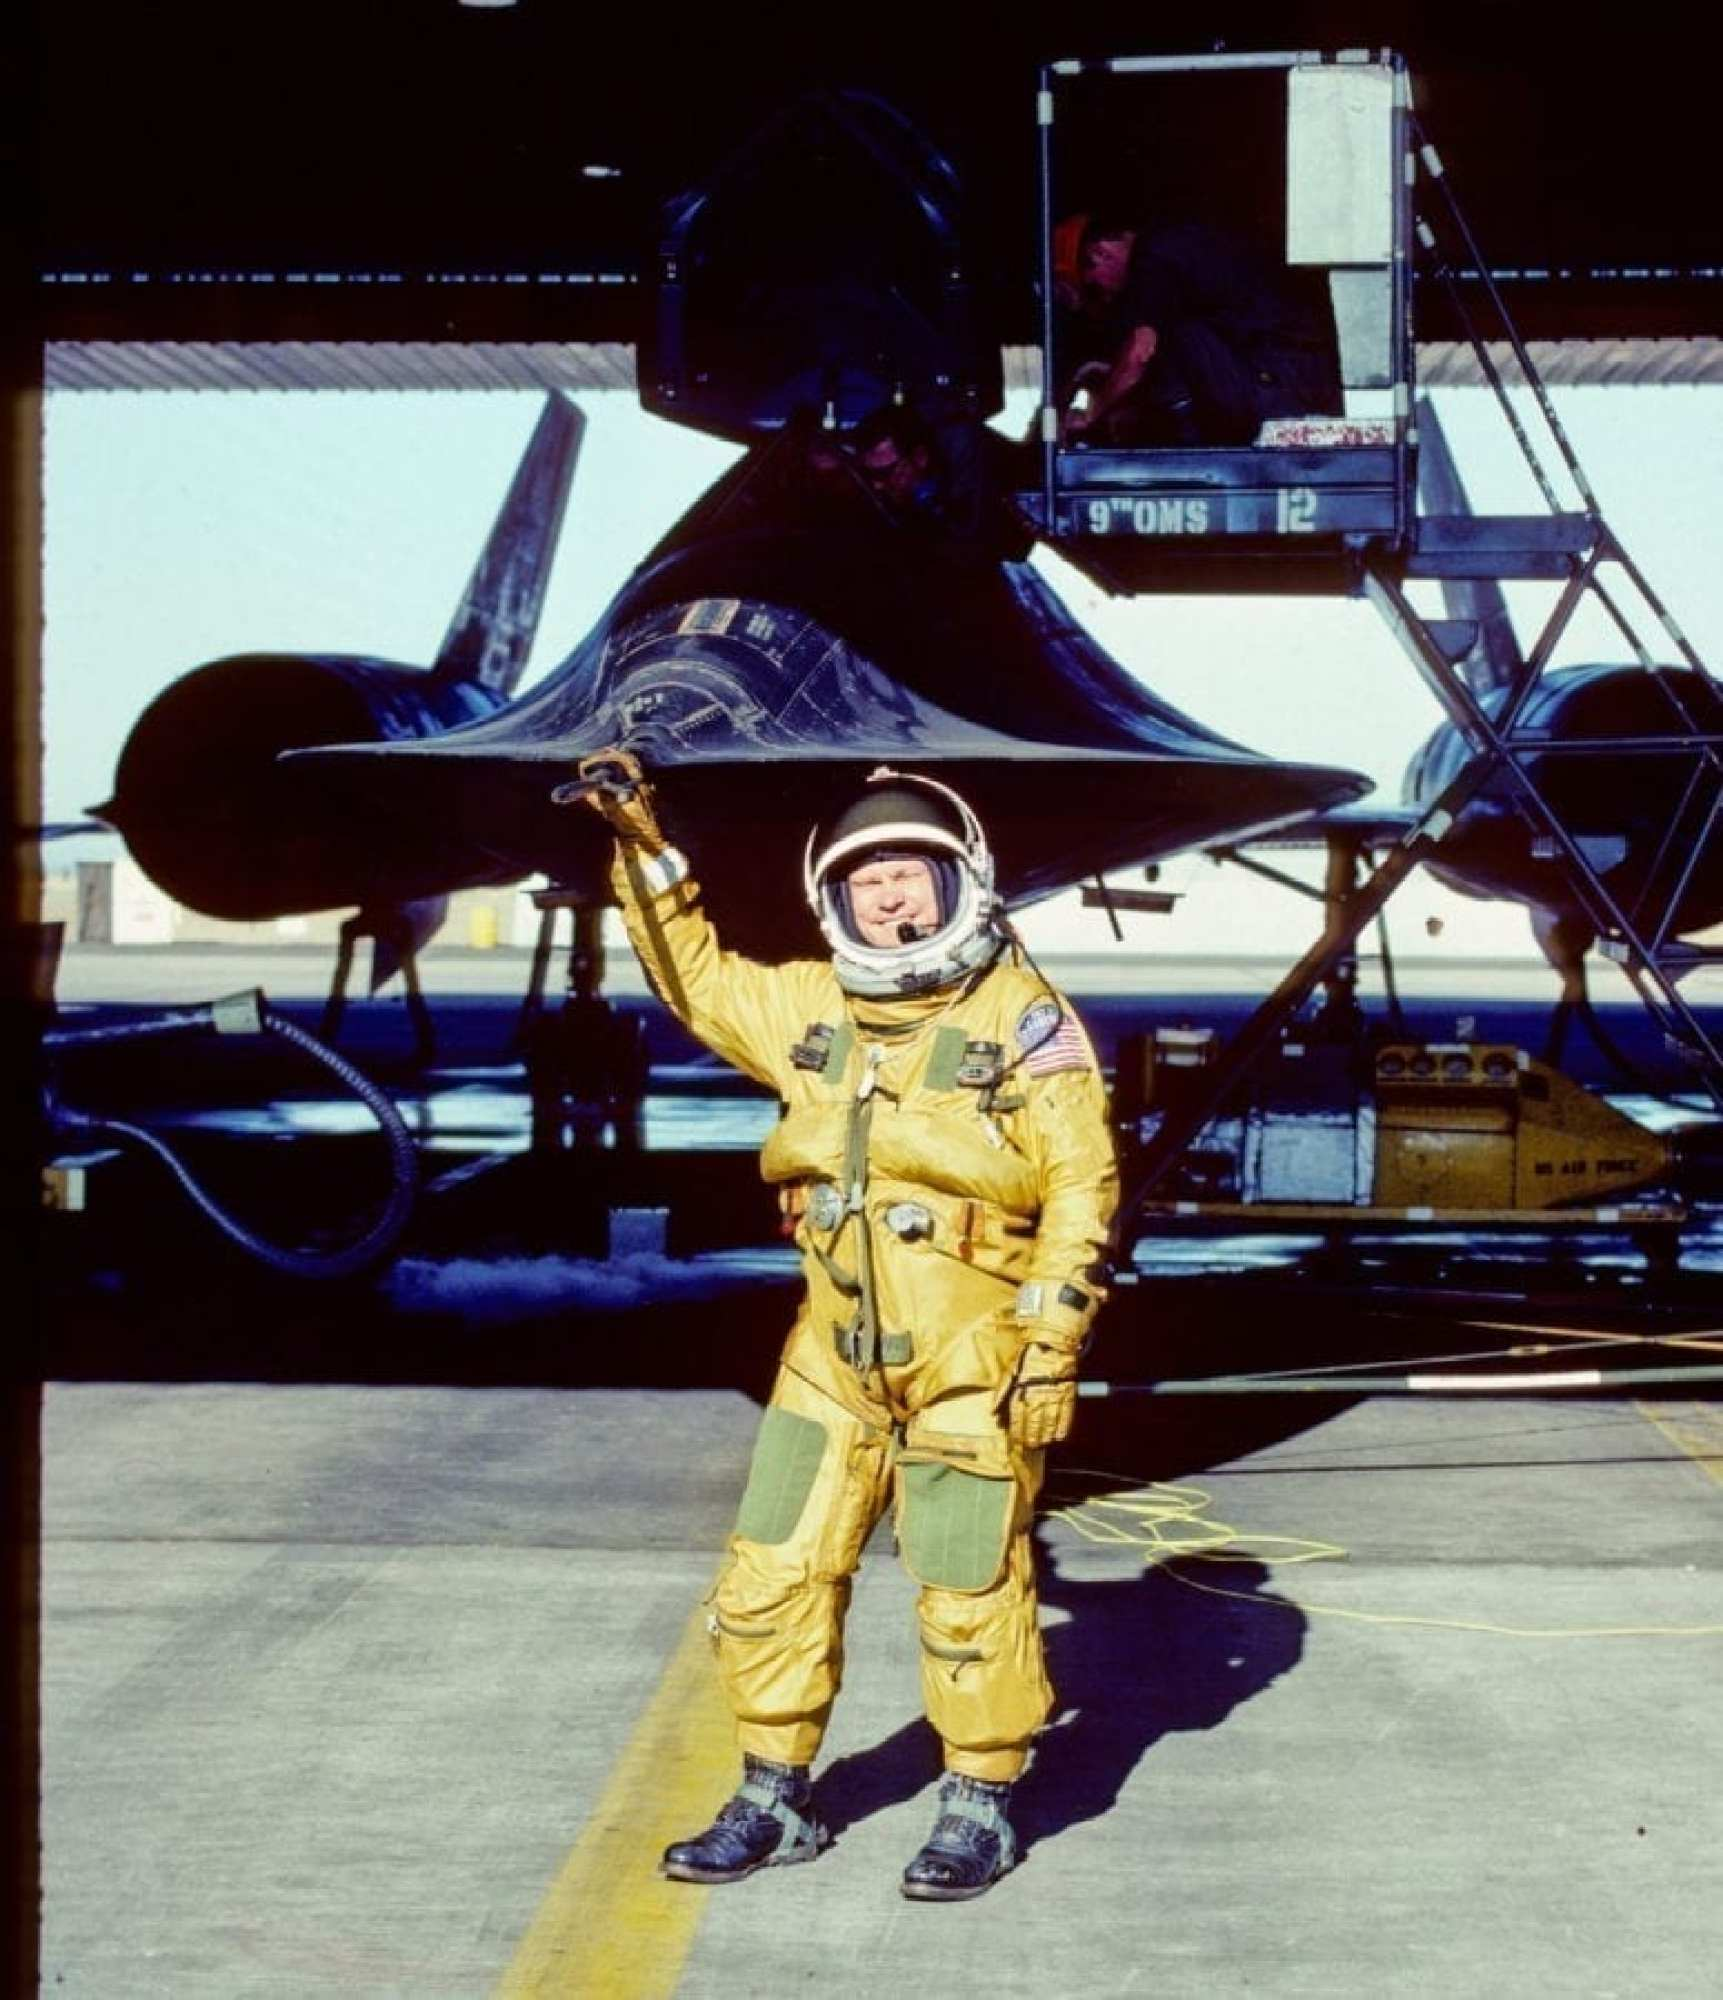 """Col. Adelbert """"Buz"""" Carpenter stands at the nose of the SR-71 he flew during his active duty career. Now retired, Carpenter gave a presentation on the venerable aircraft and its mission during the Cold War. (courtesy photo)"""